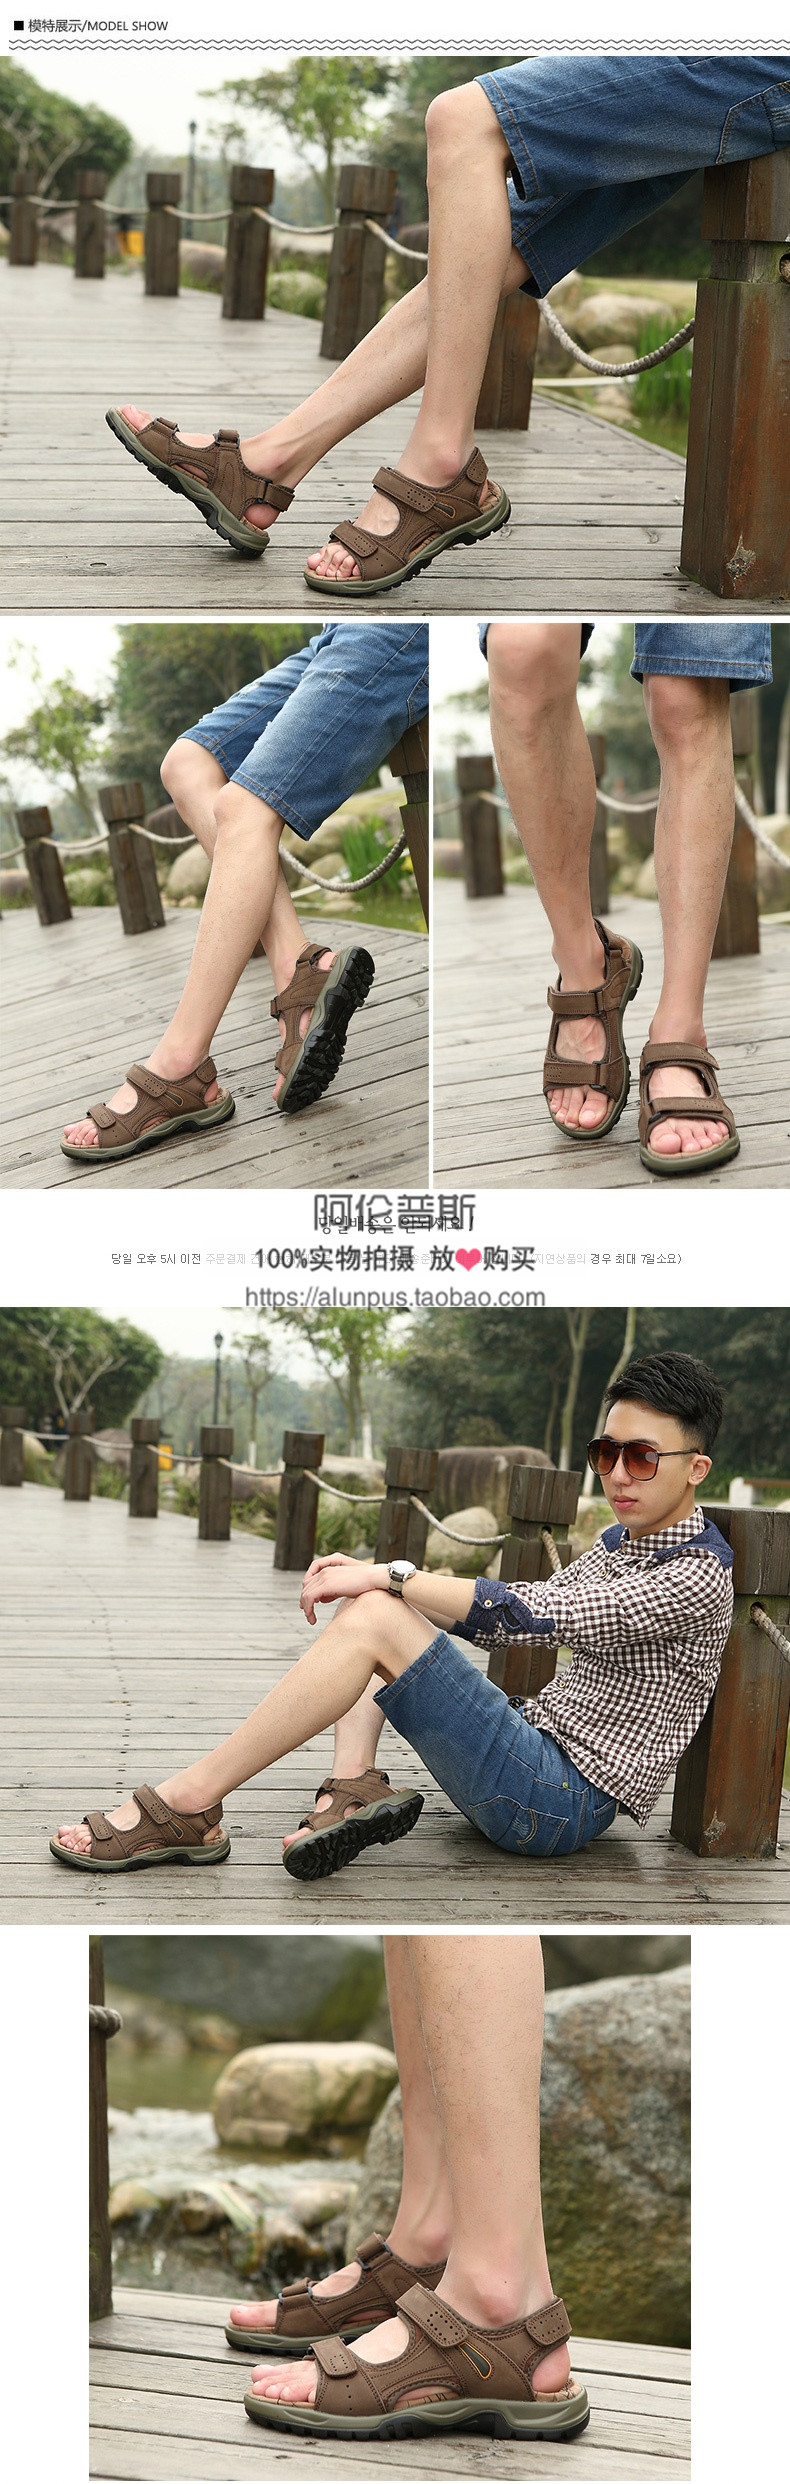 100% Genuine Leather Sandals Men Fashion Brand Shoes Mens Sandals 2017 Summer Beach Sandals Holiday Gifts Soft Comfortable